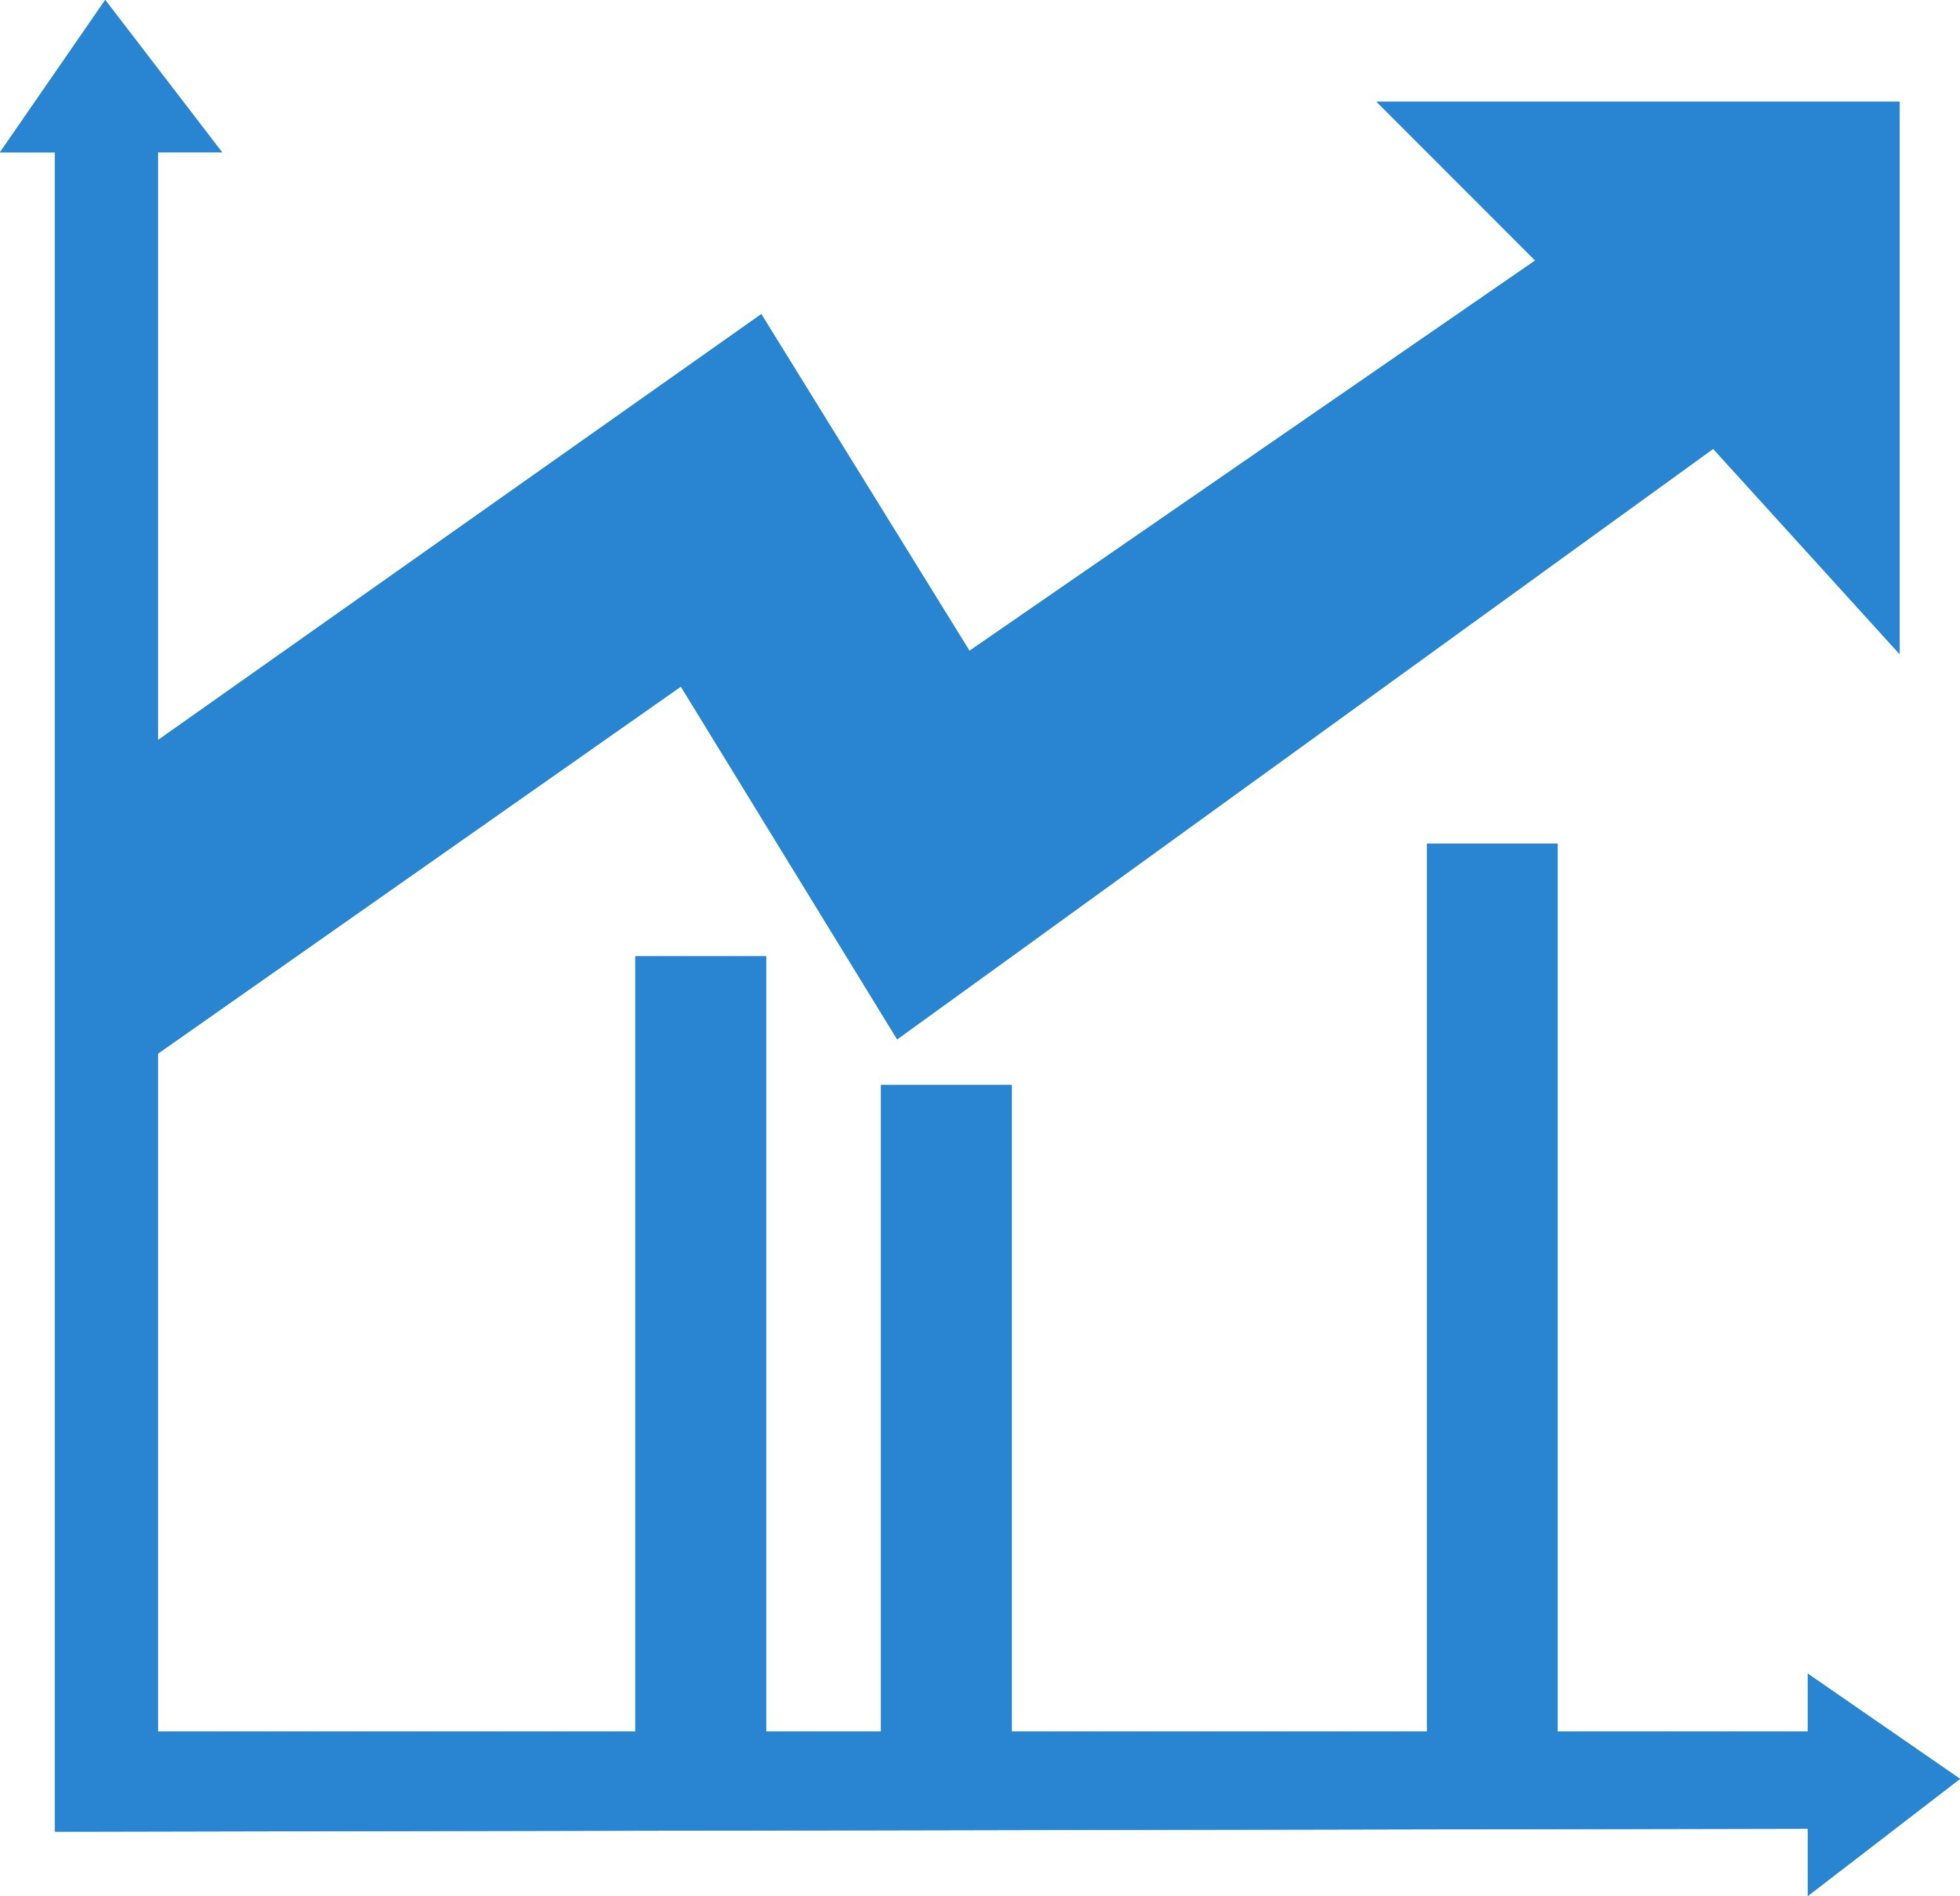 trend icon chart upward economic outlook growth business simplicity managing canadian global label sell social miss did perfect